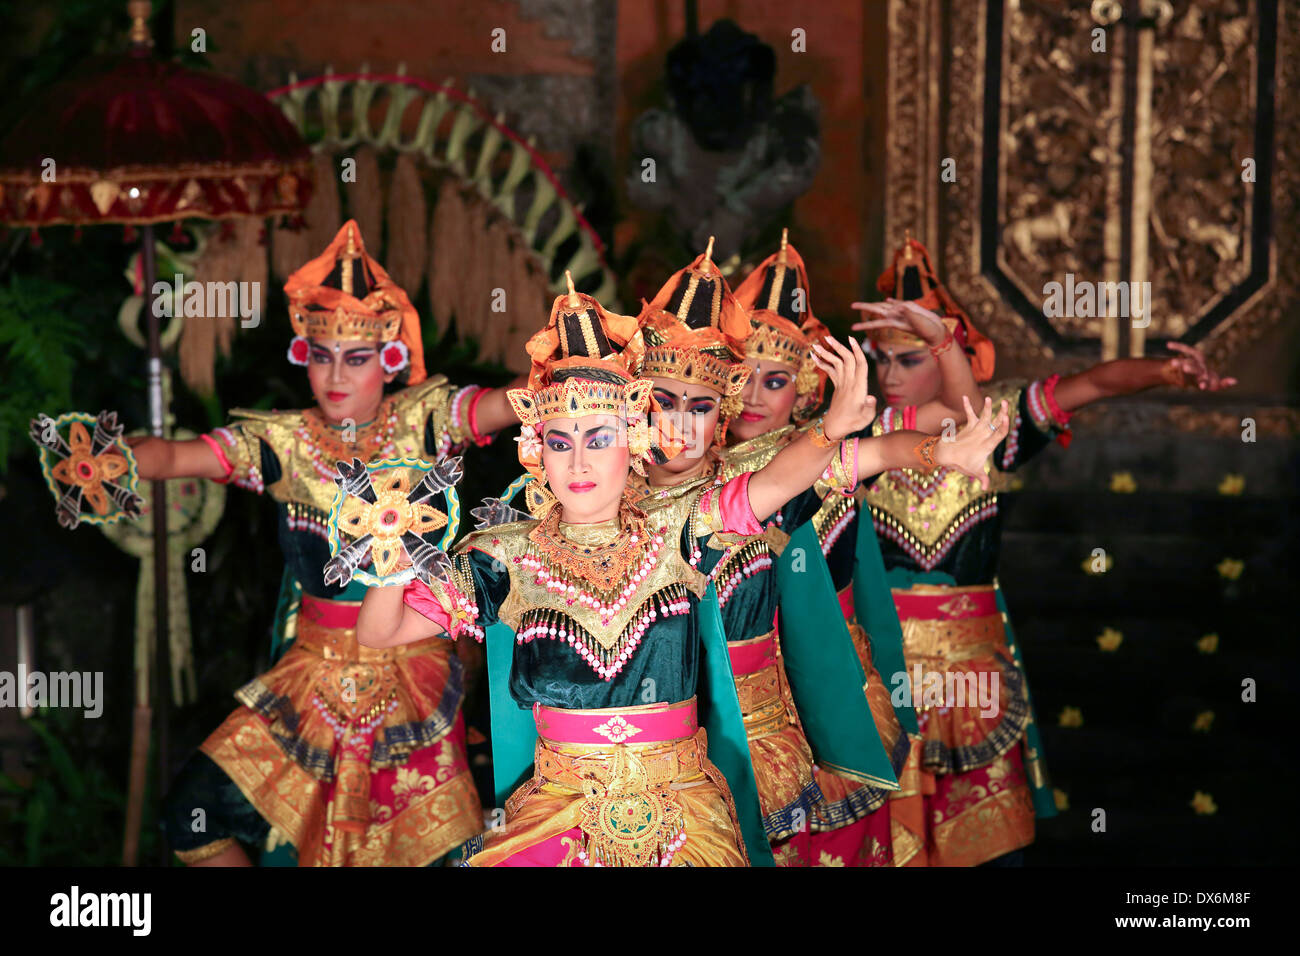 Balinese dancers on stage performing the Legong dance in Ubud, Bali Stock Photo